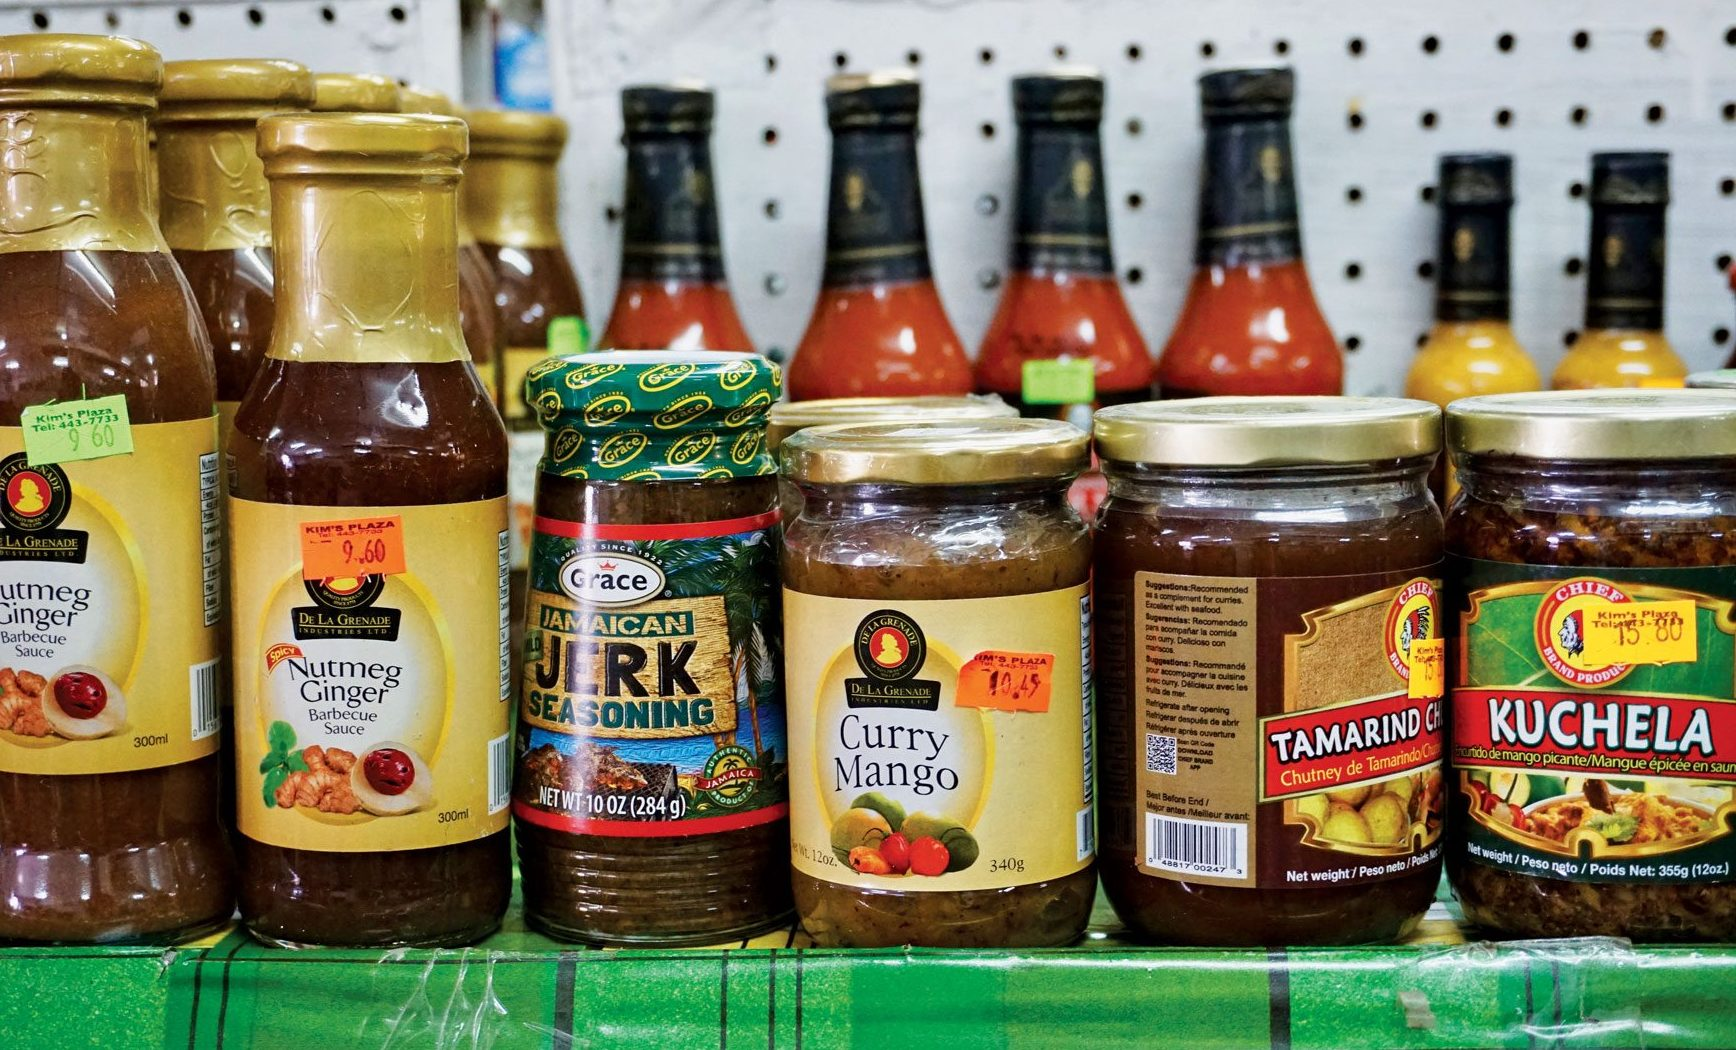 Regional specialties found only in the local stores. Photo by Jan Hein